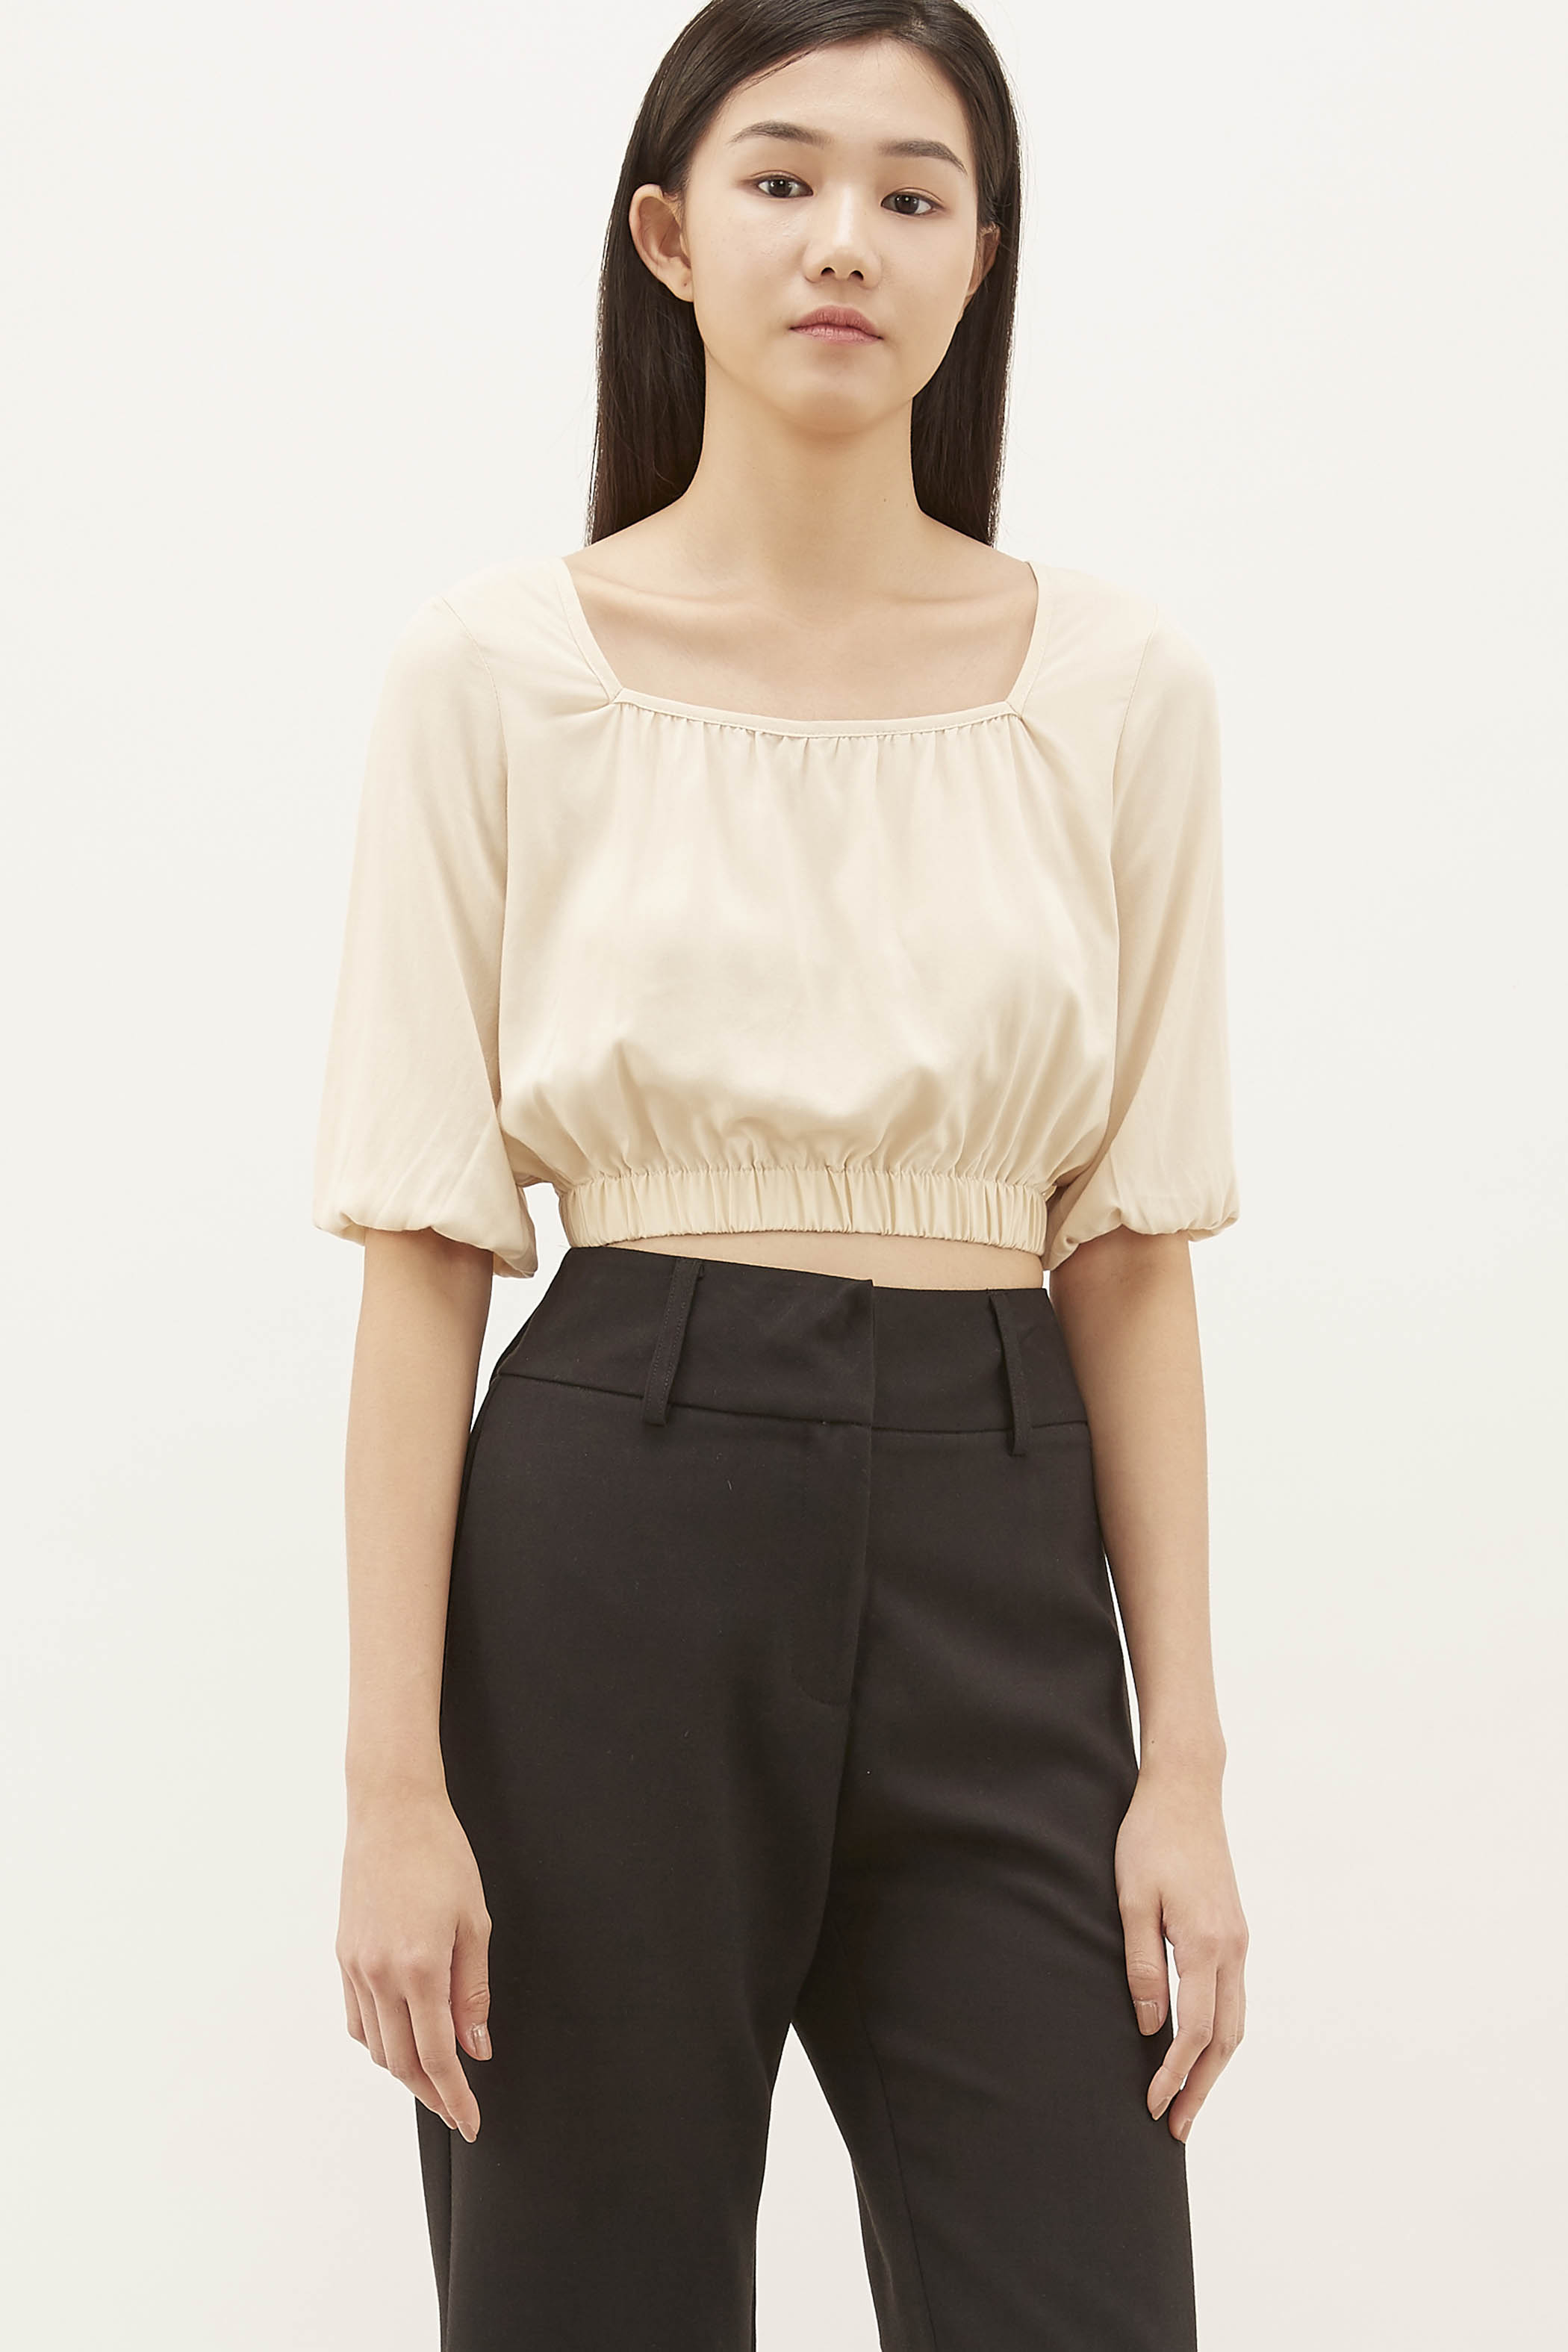 Zena Square-neck Crop Top